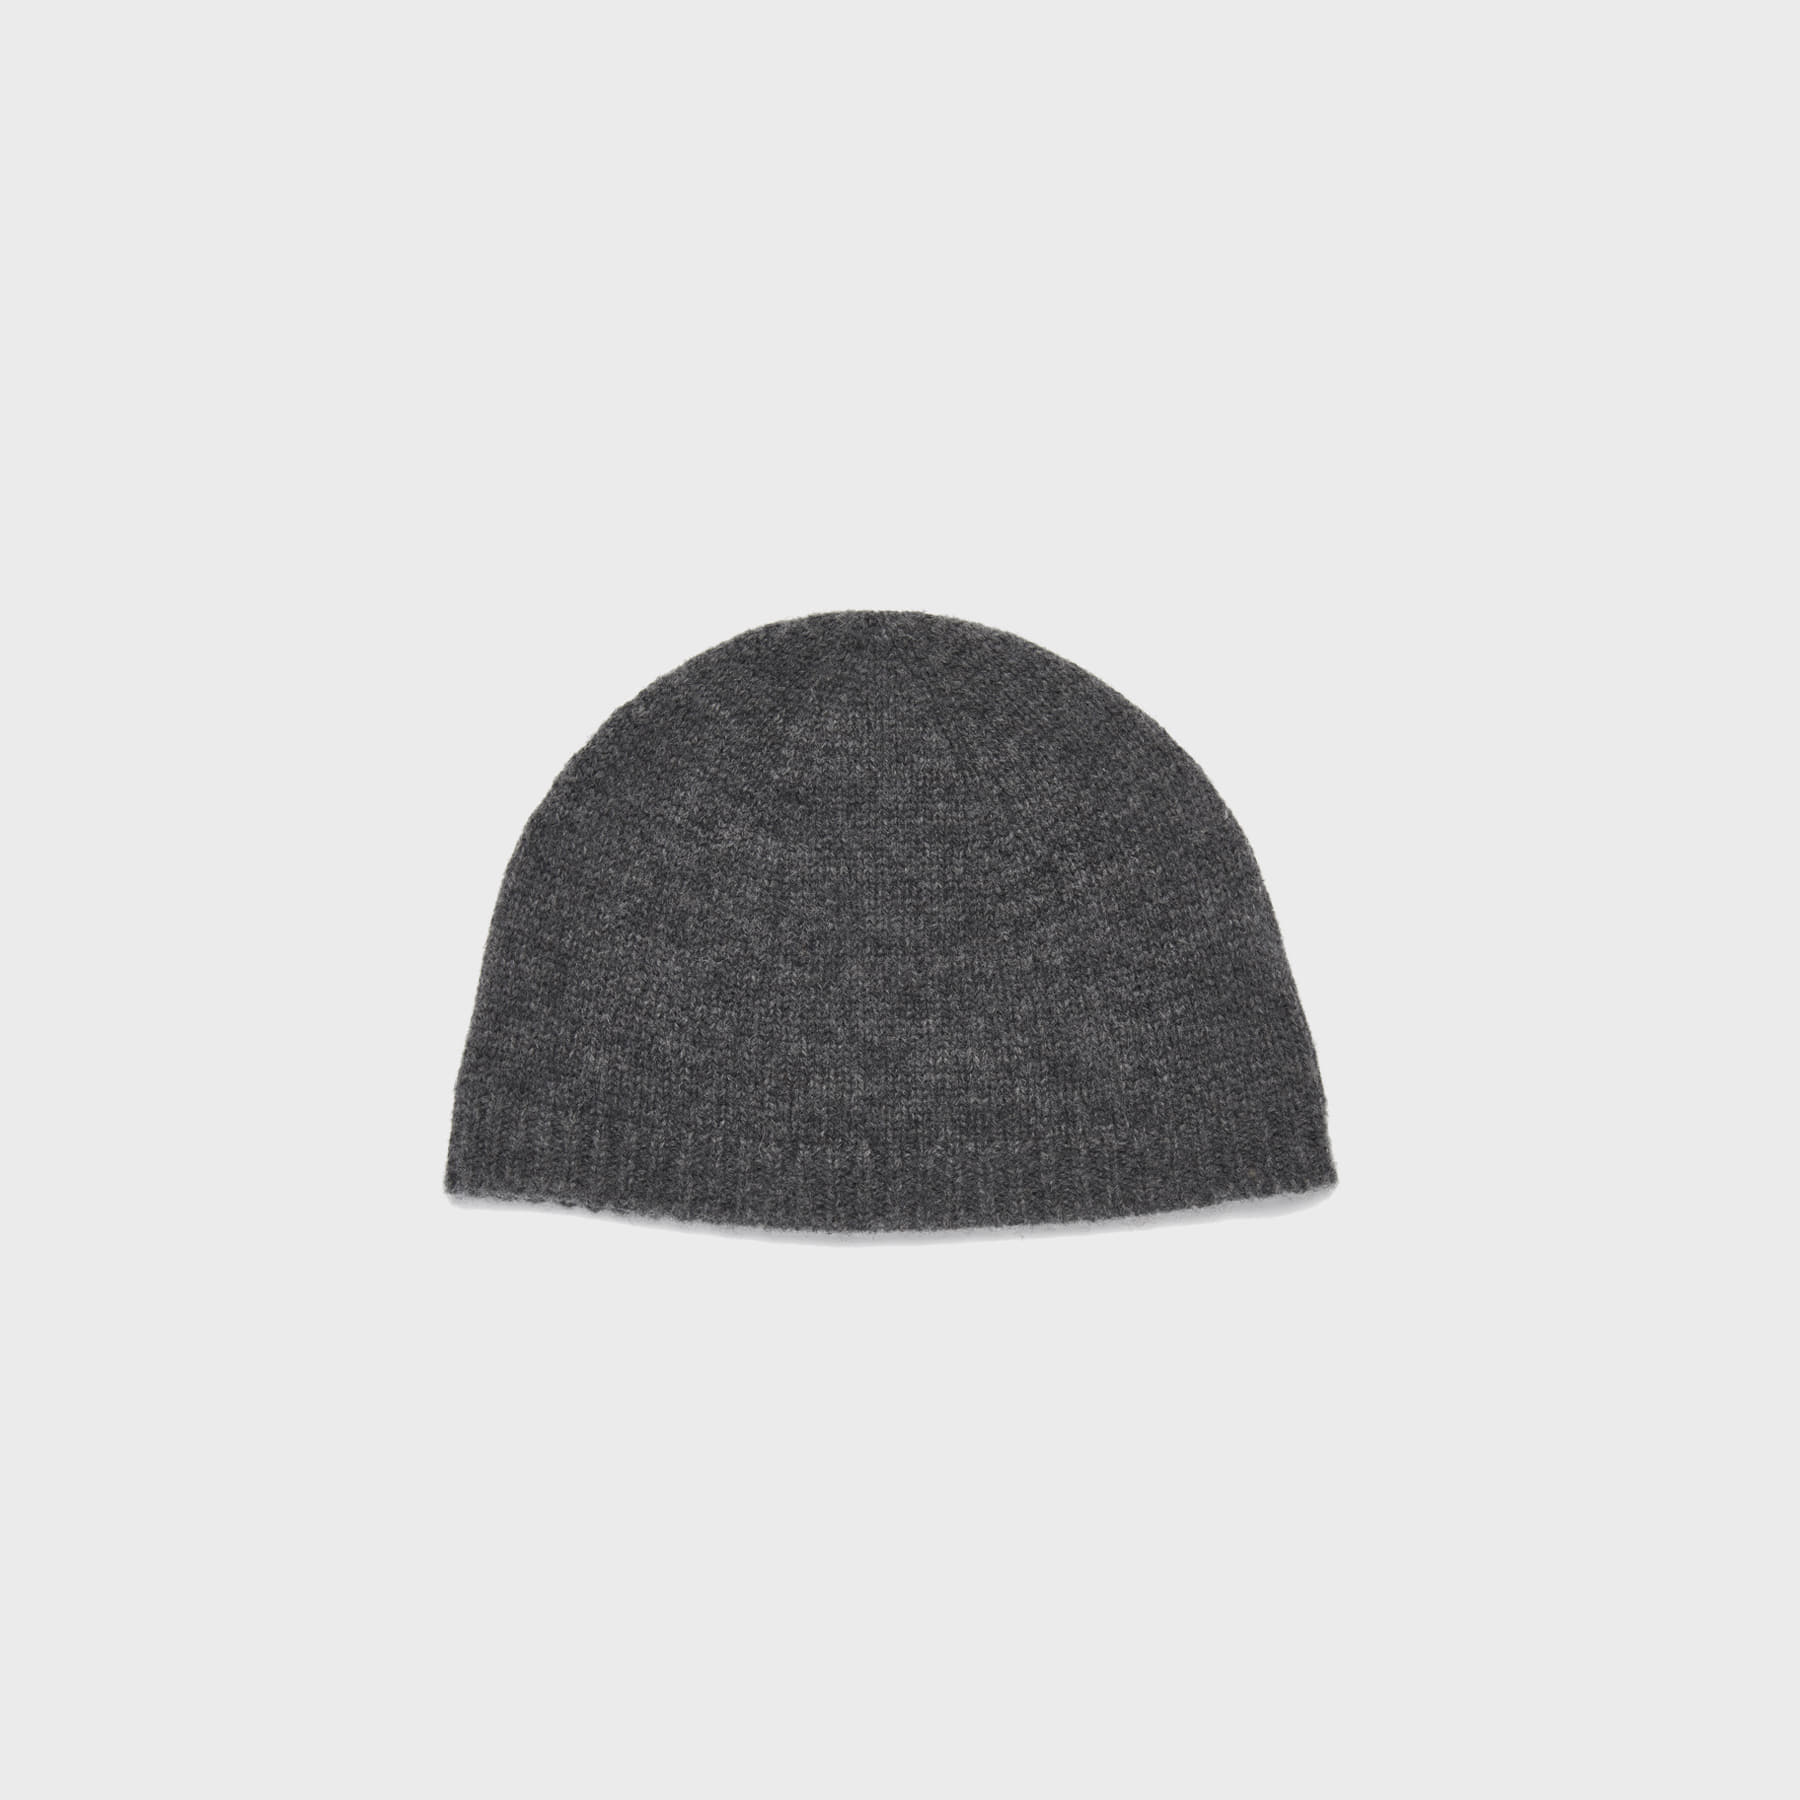 Wool watch cap (gray)